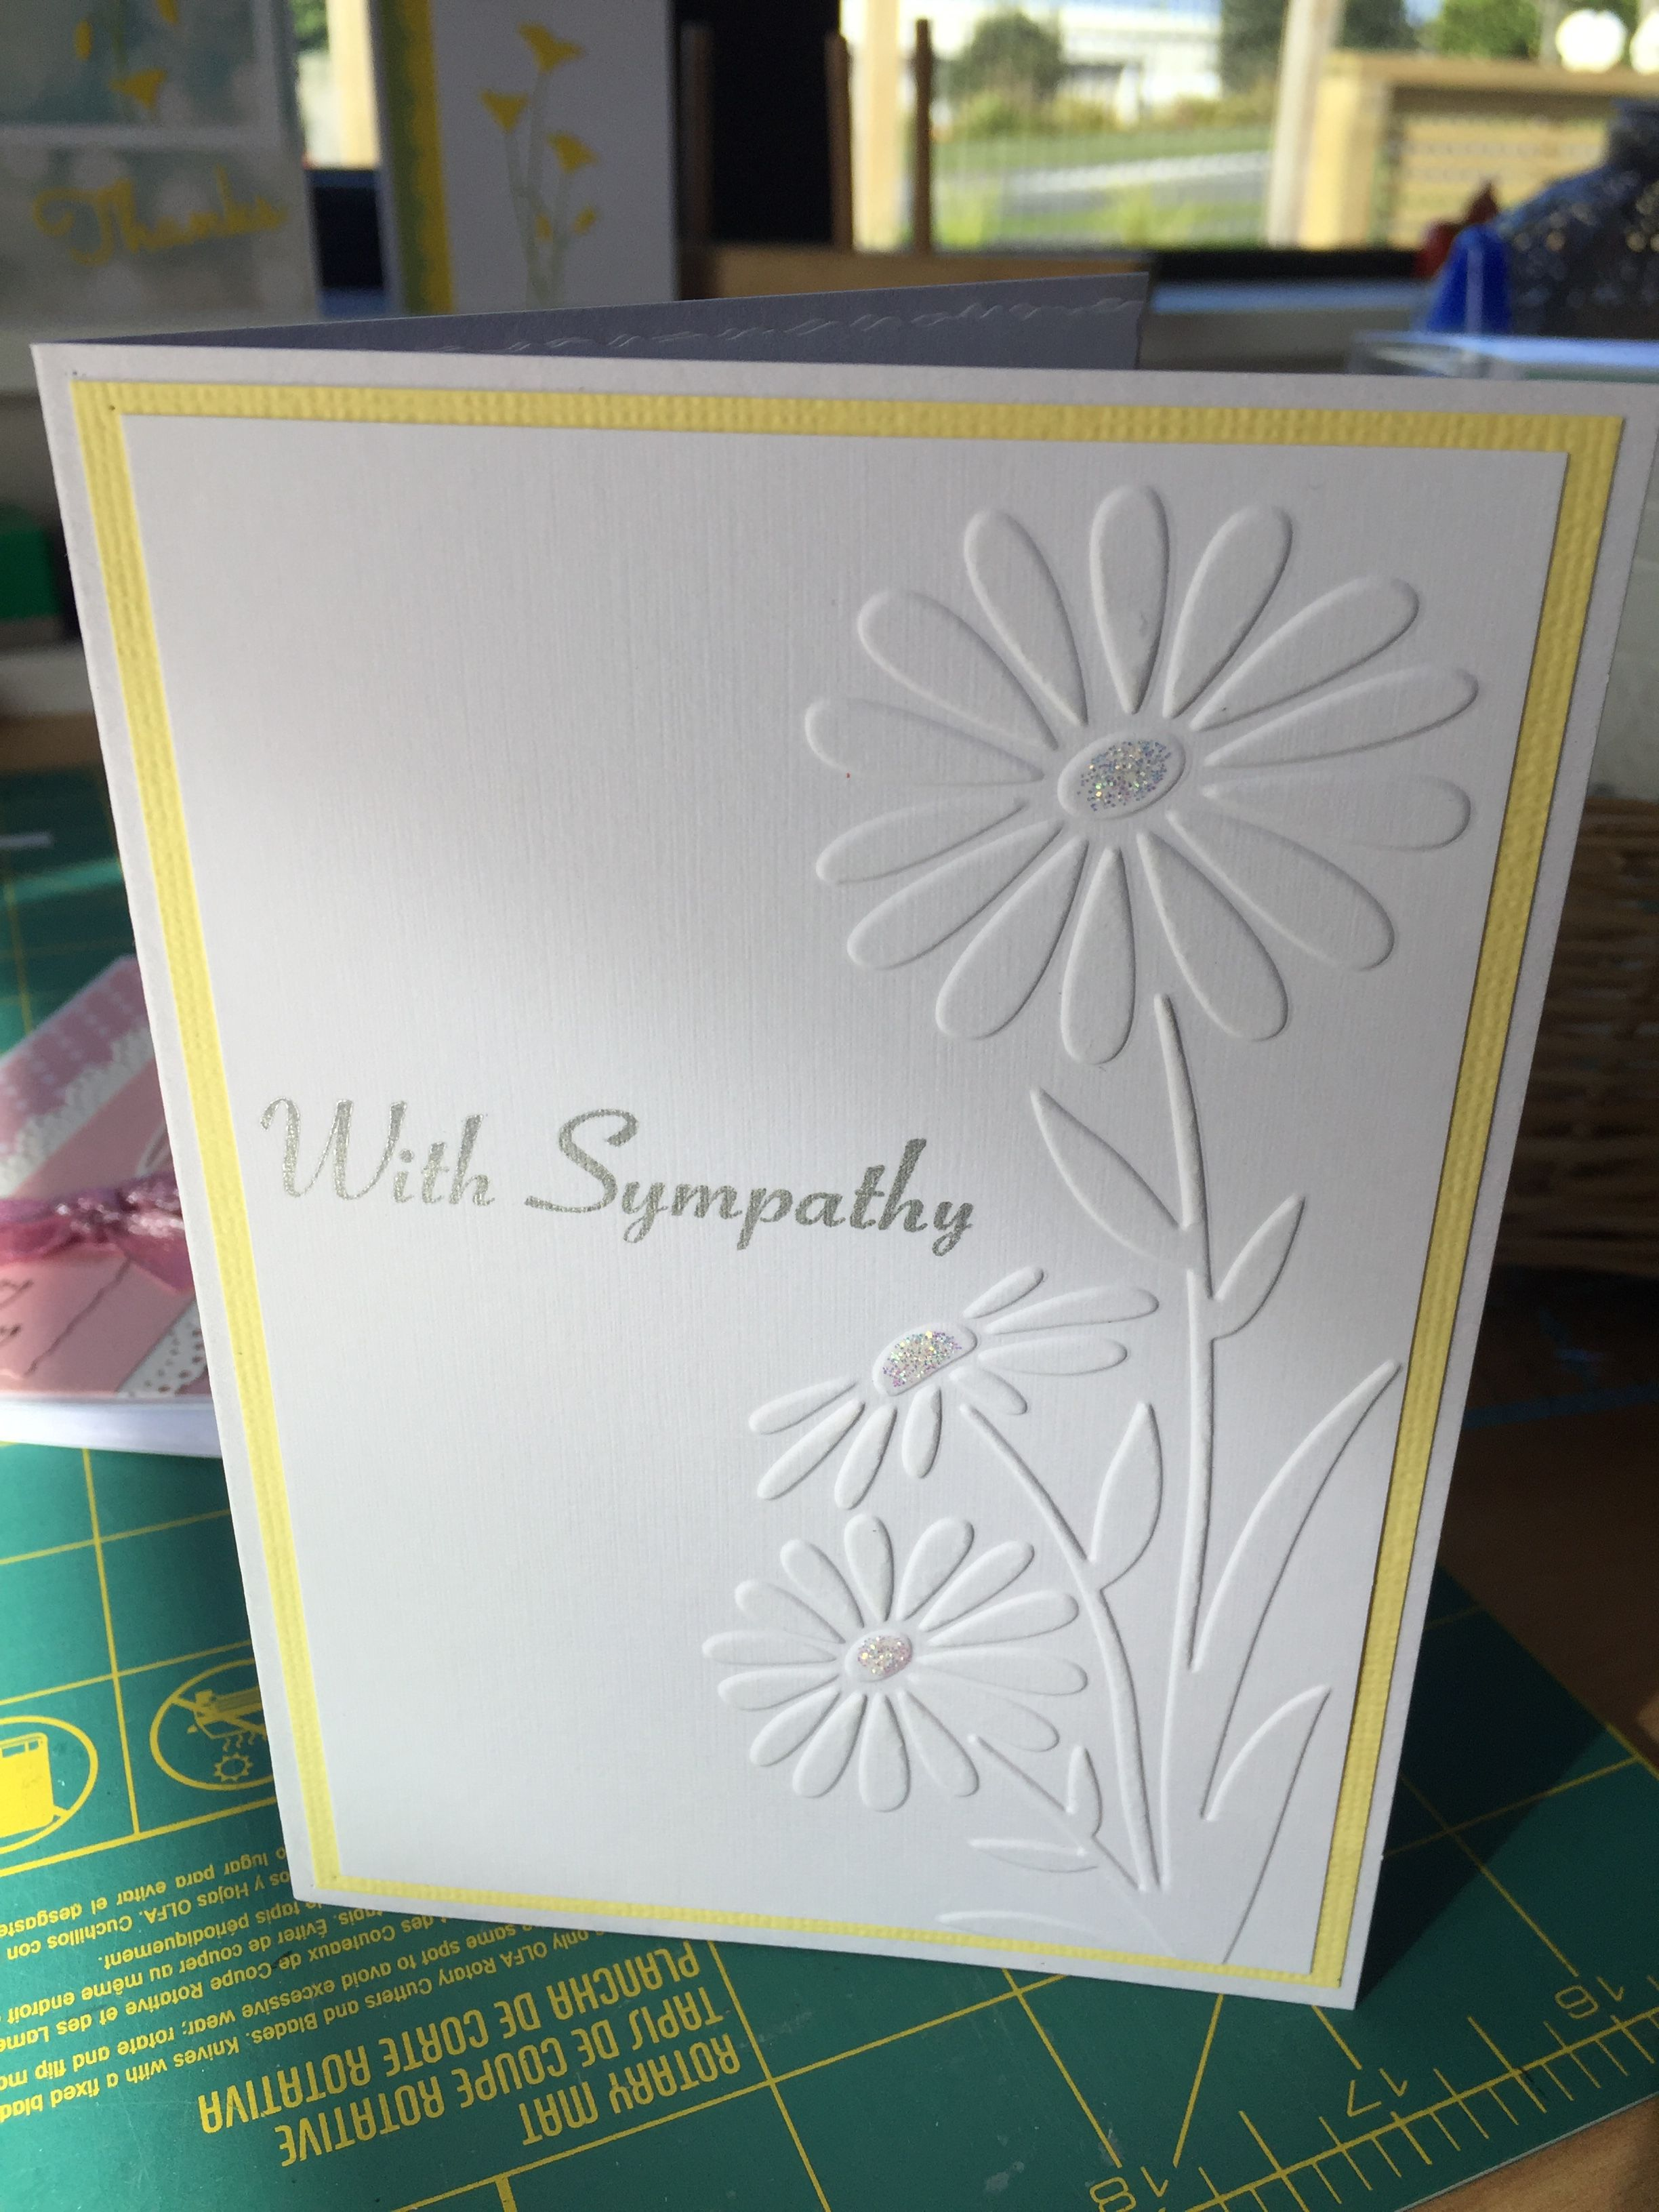 Pin By Sandi Nakoneczny On Sympathy Cards With Images Sympathy